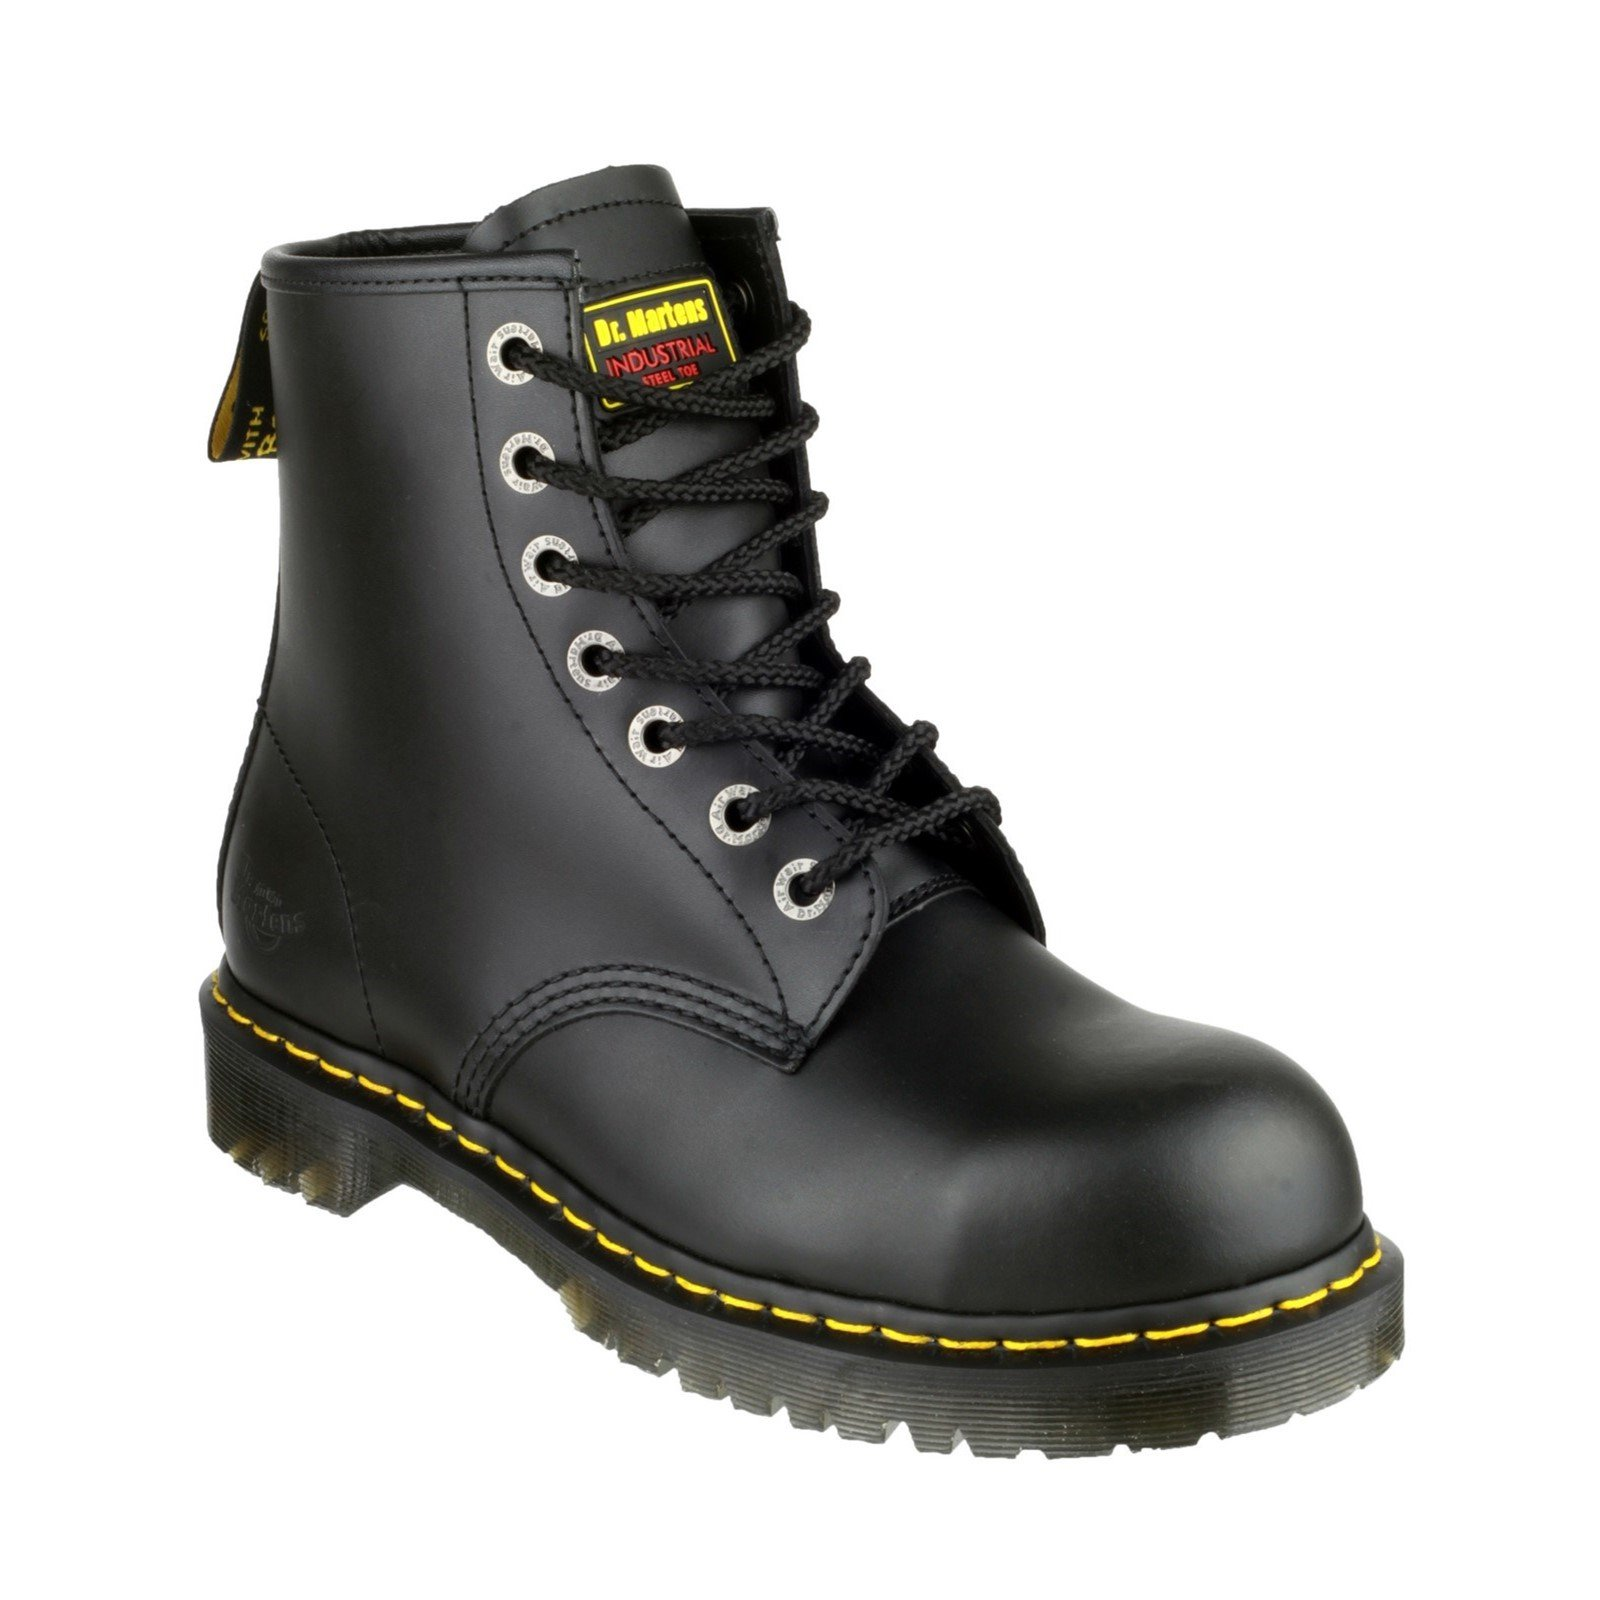 Dr Martens Unisex Icon Lace up Safety Boot Black 19498 - Black 14